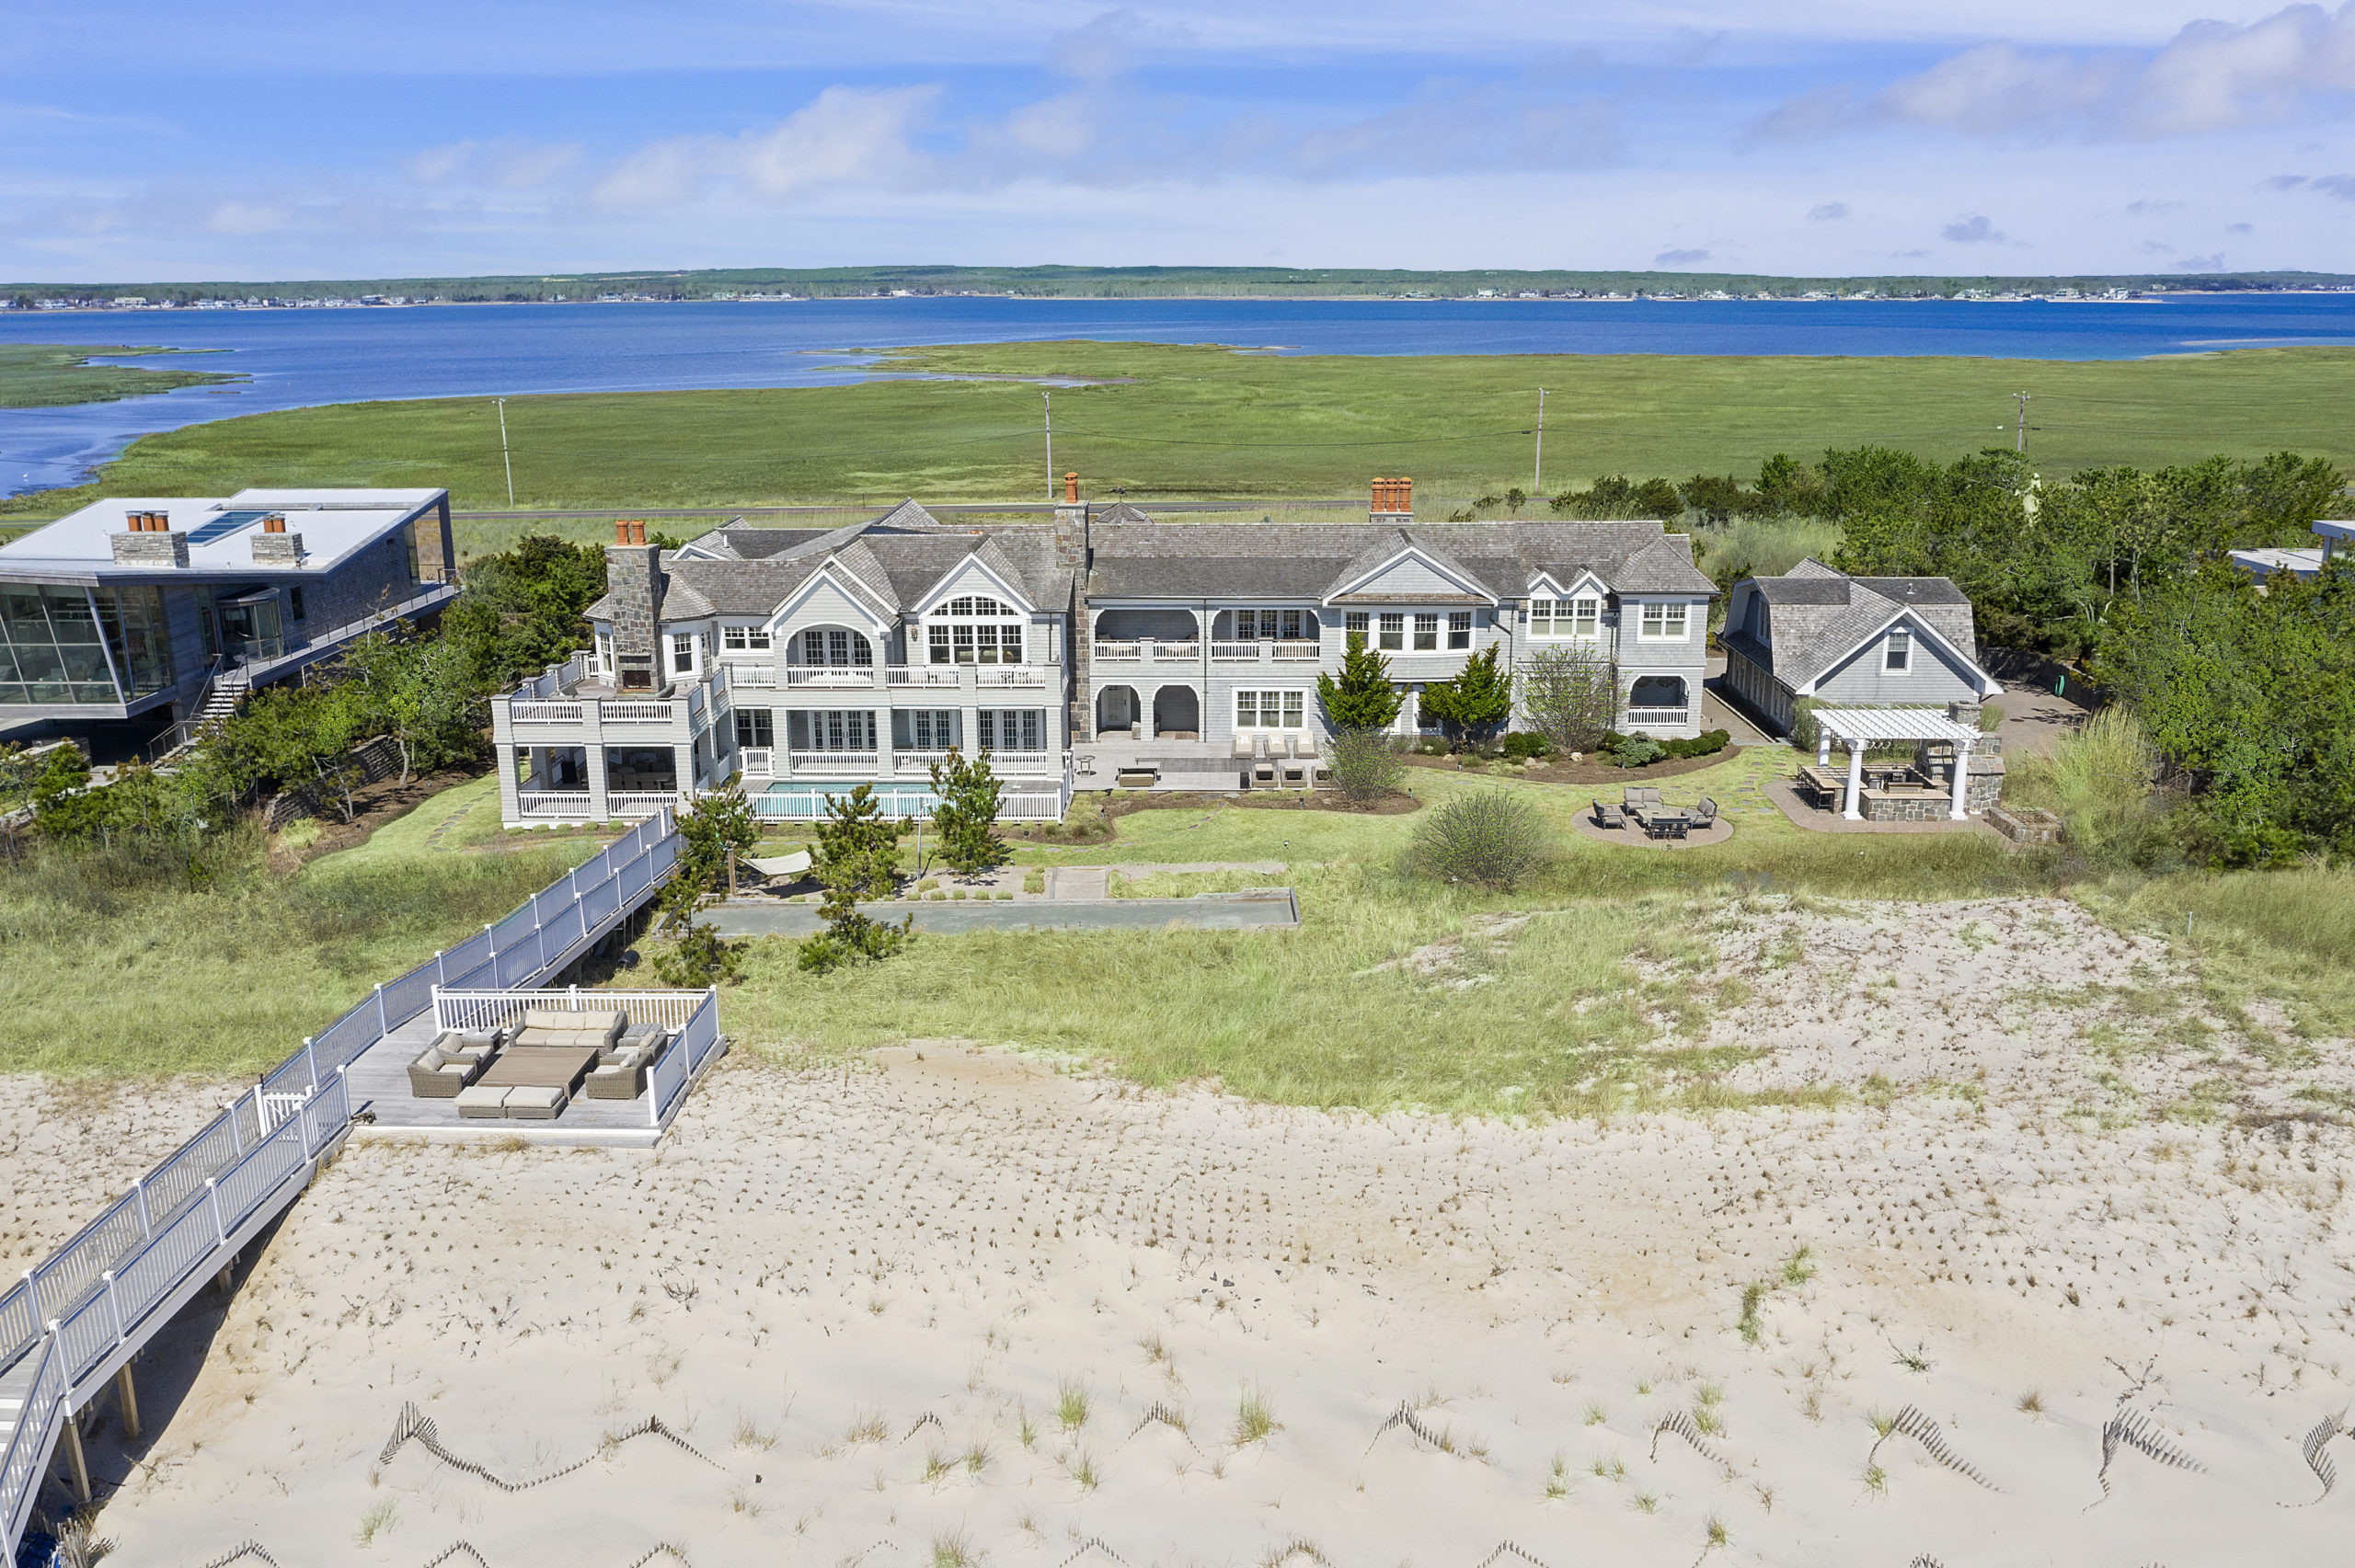 59 Dune Road, East Quogue.